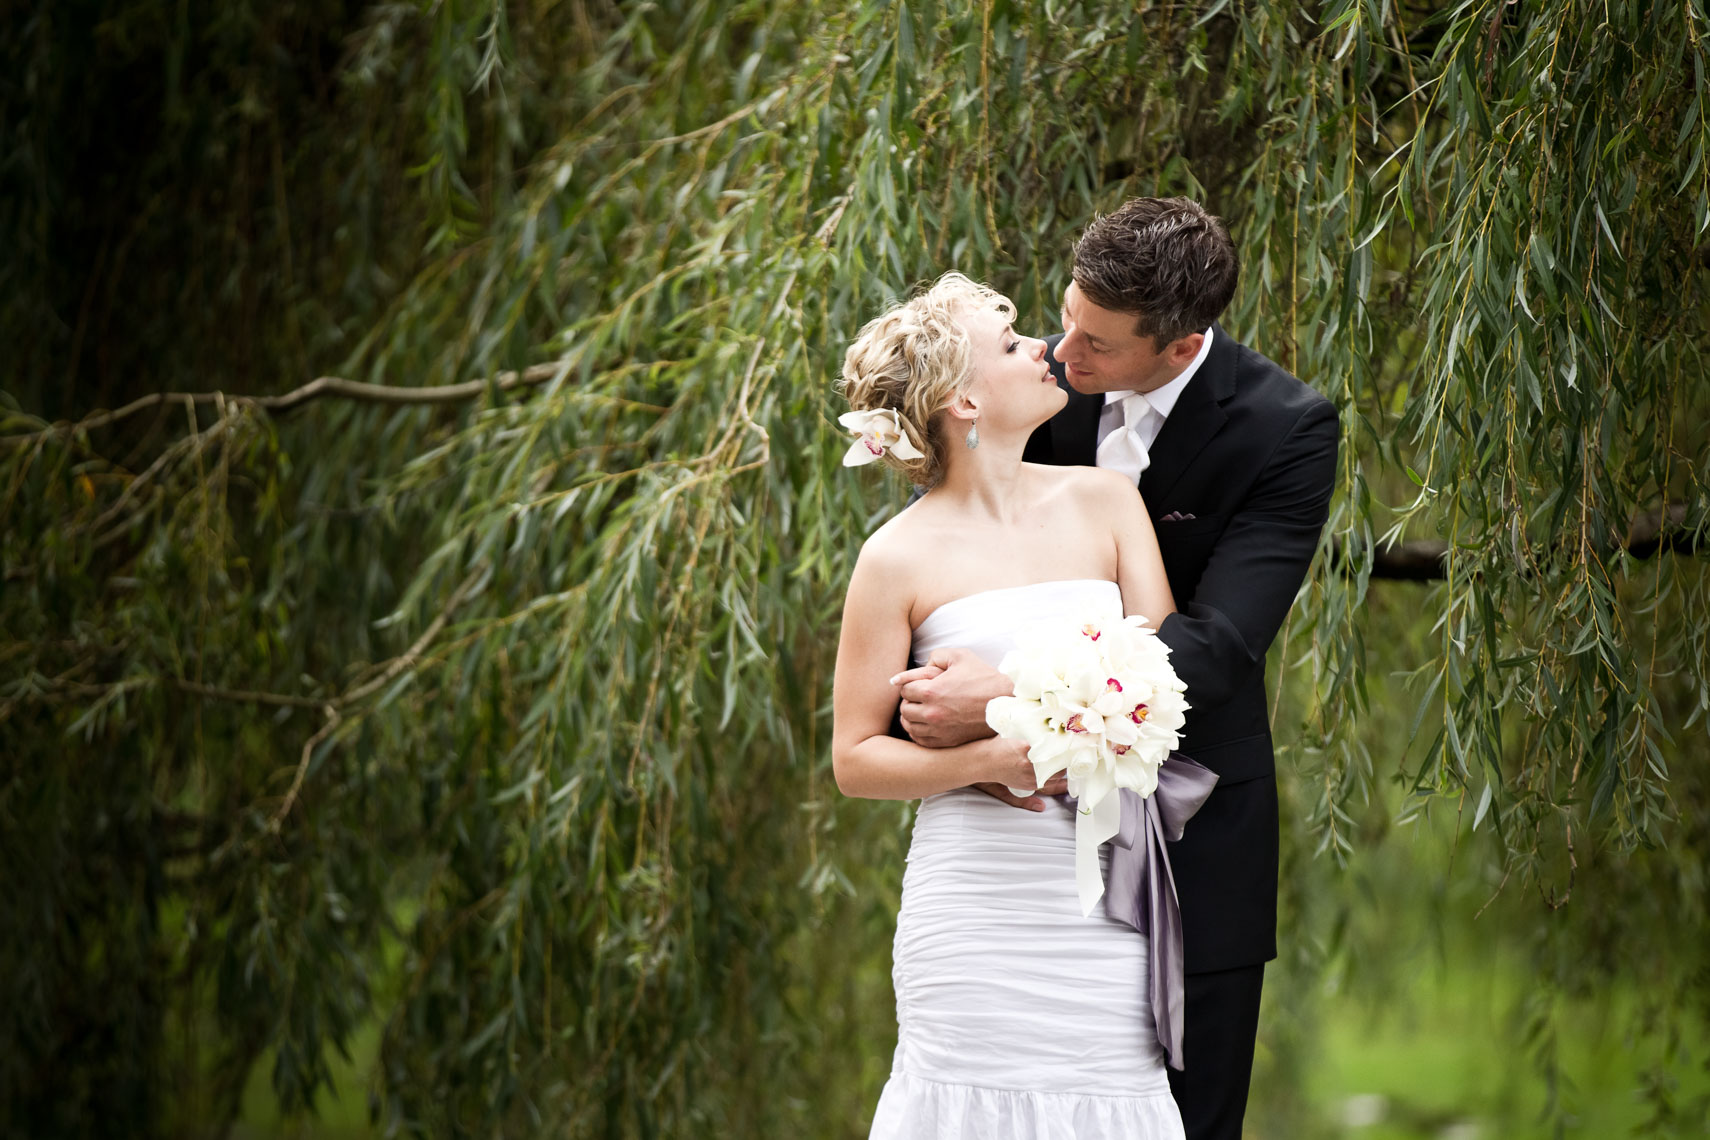 Bride and groom kiss beneath a willow tree in Queen Elizabeth Park, Vancouver